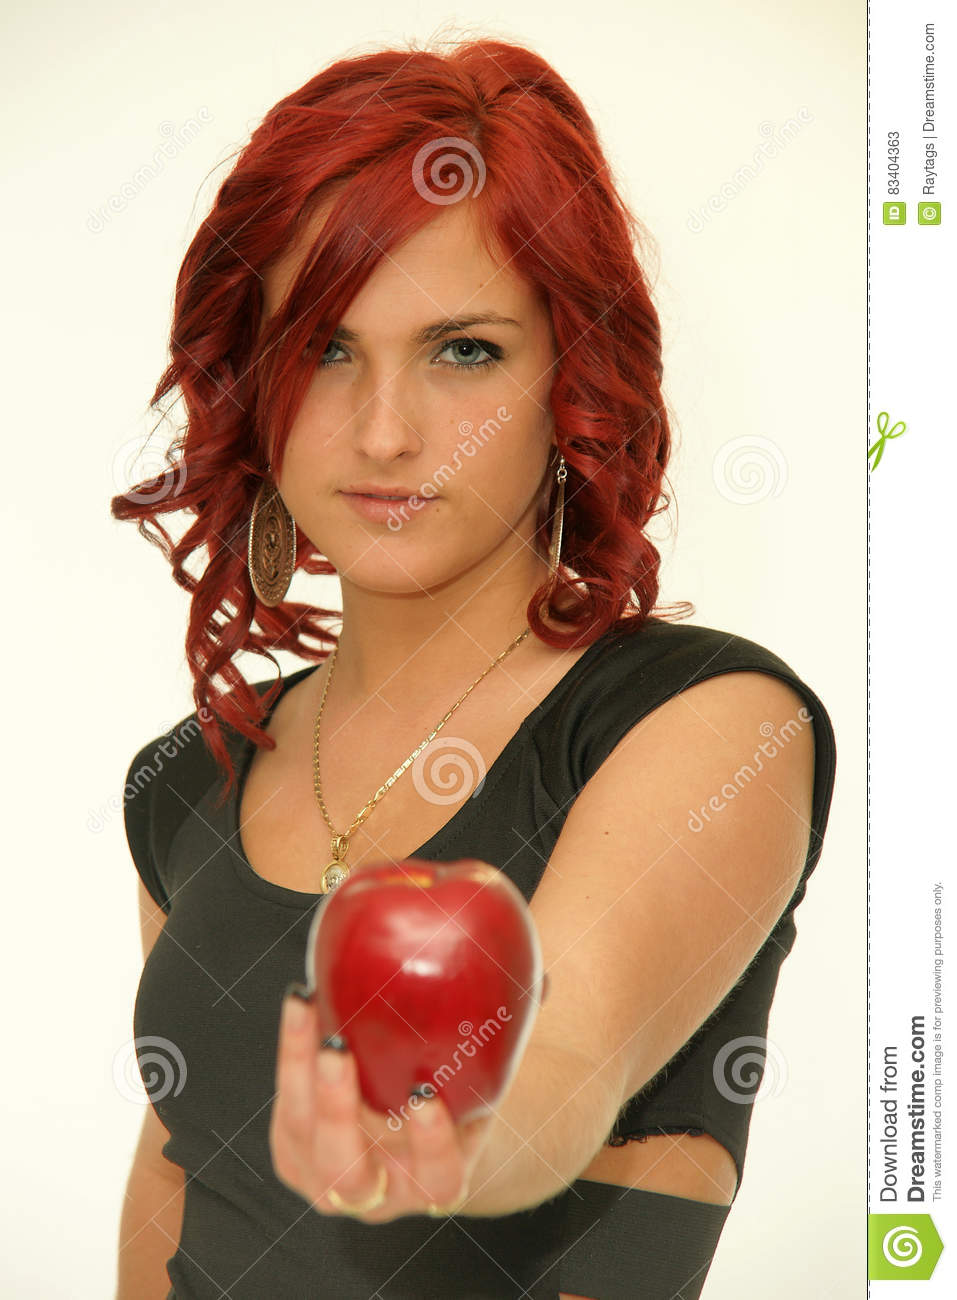 Redhead Beauty With Red Apple Stock Image Image Of Glamor